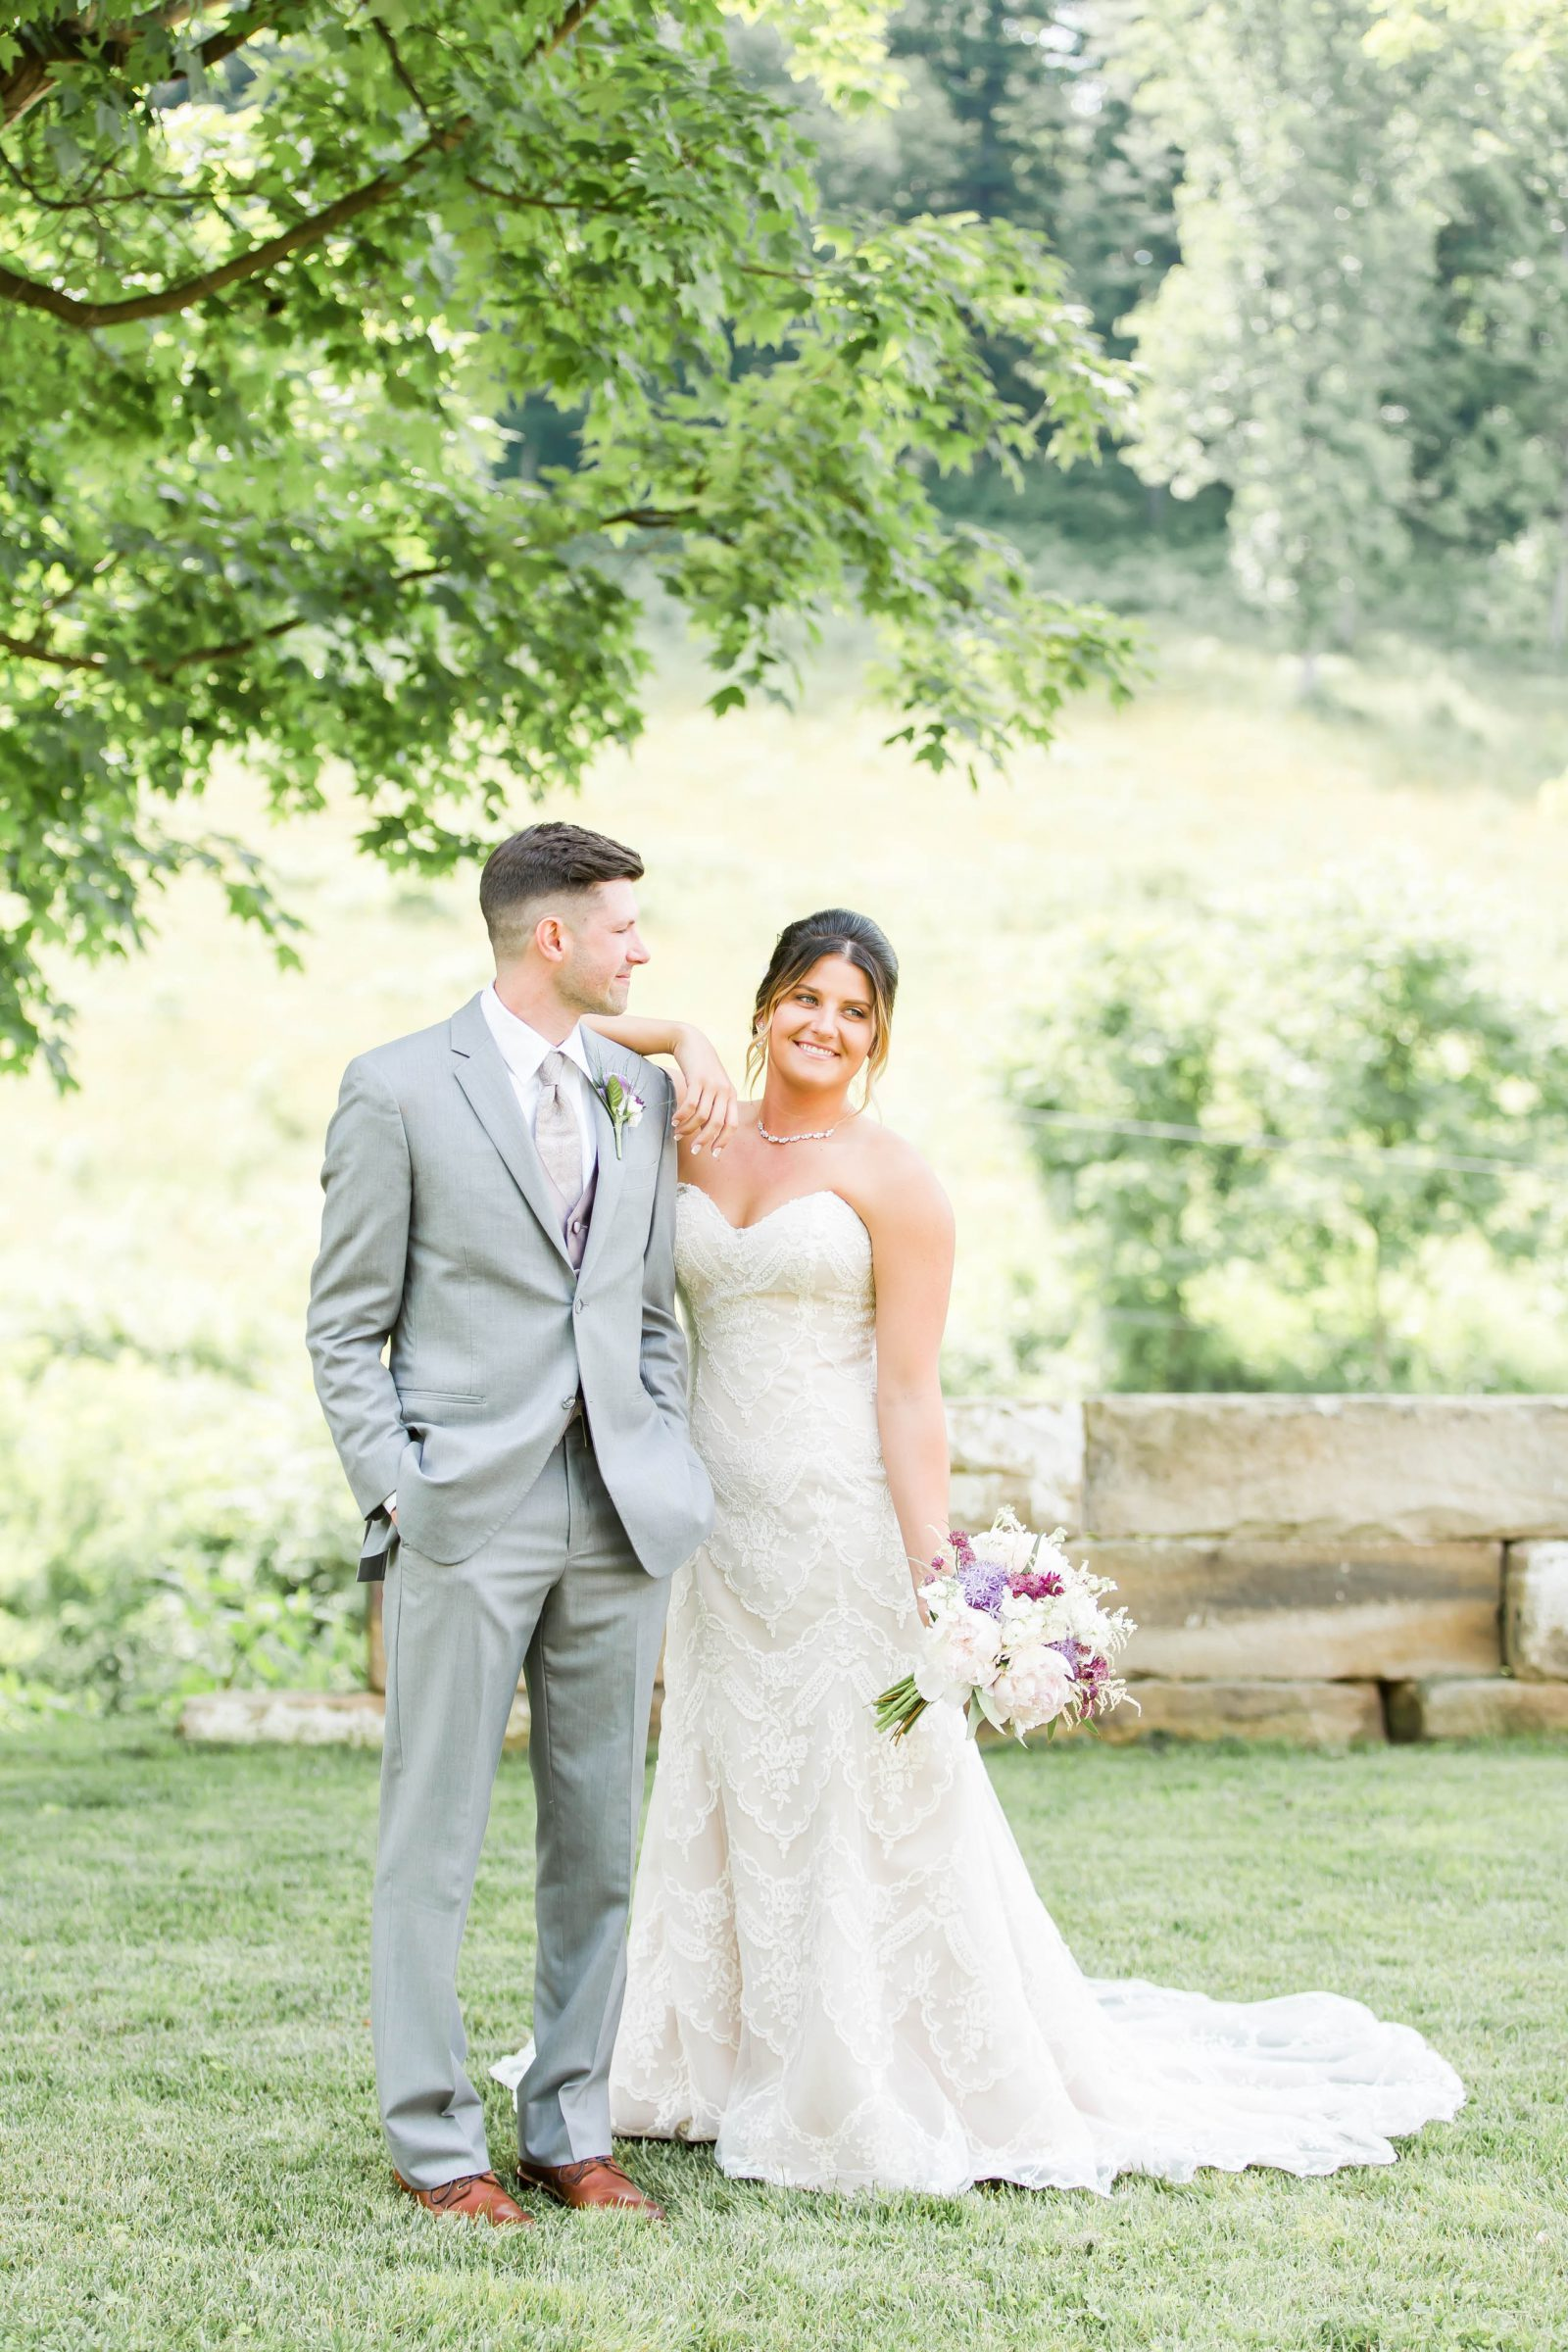 rivercrest-farm-summer-wedding-loren-jackson-photography-33